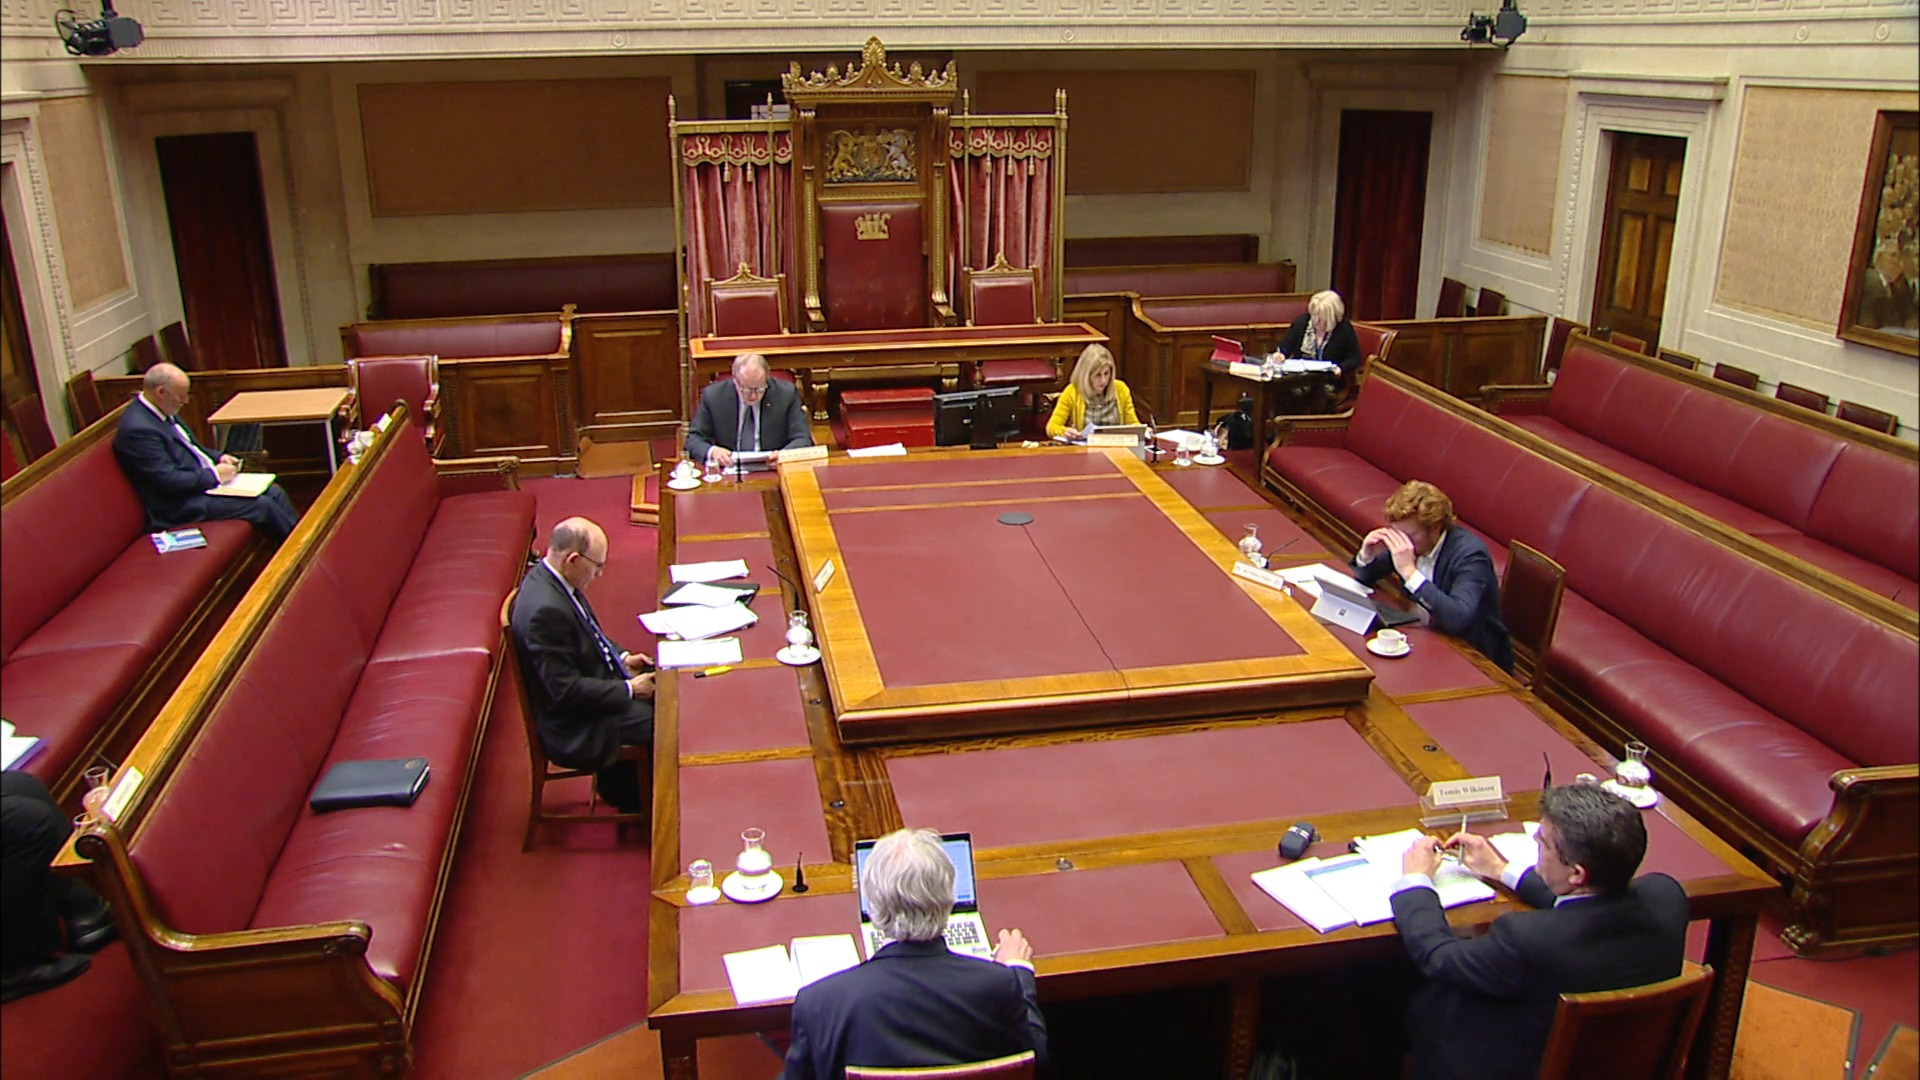 Public Accounts Committee Meeting - Thursday 22nd April 2021